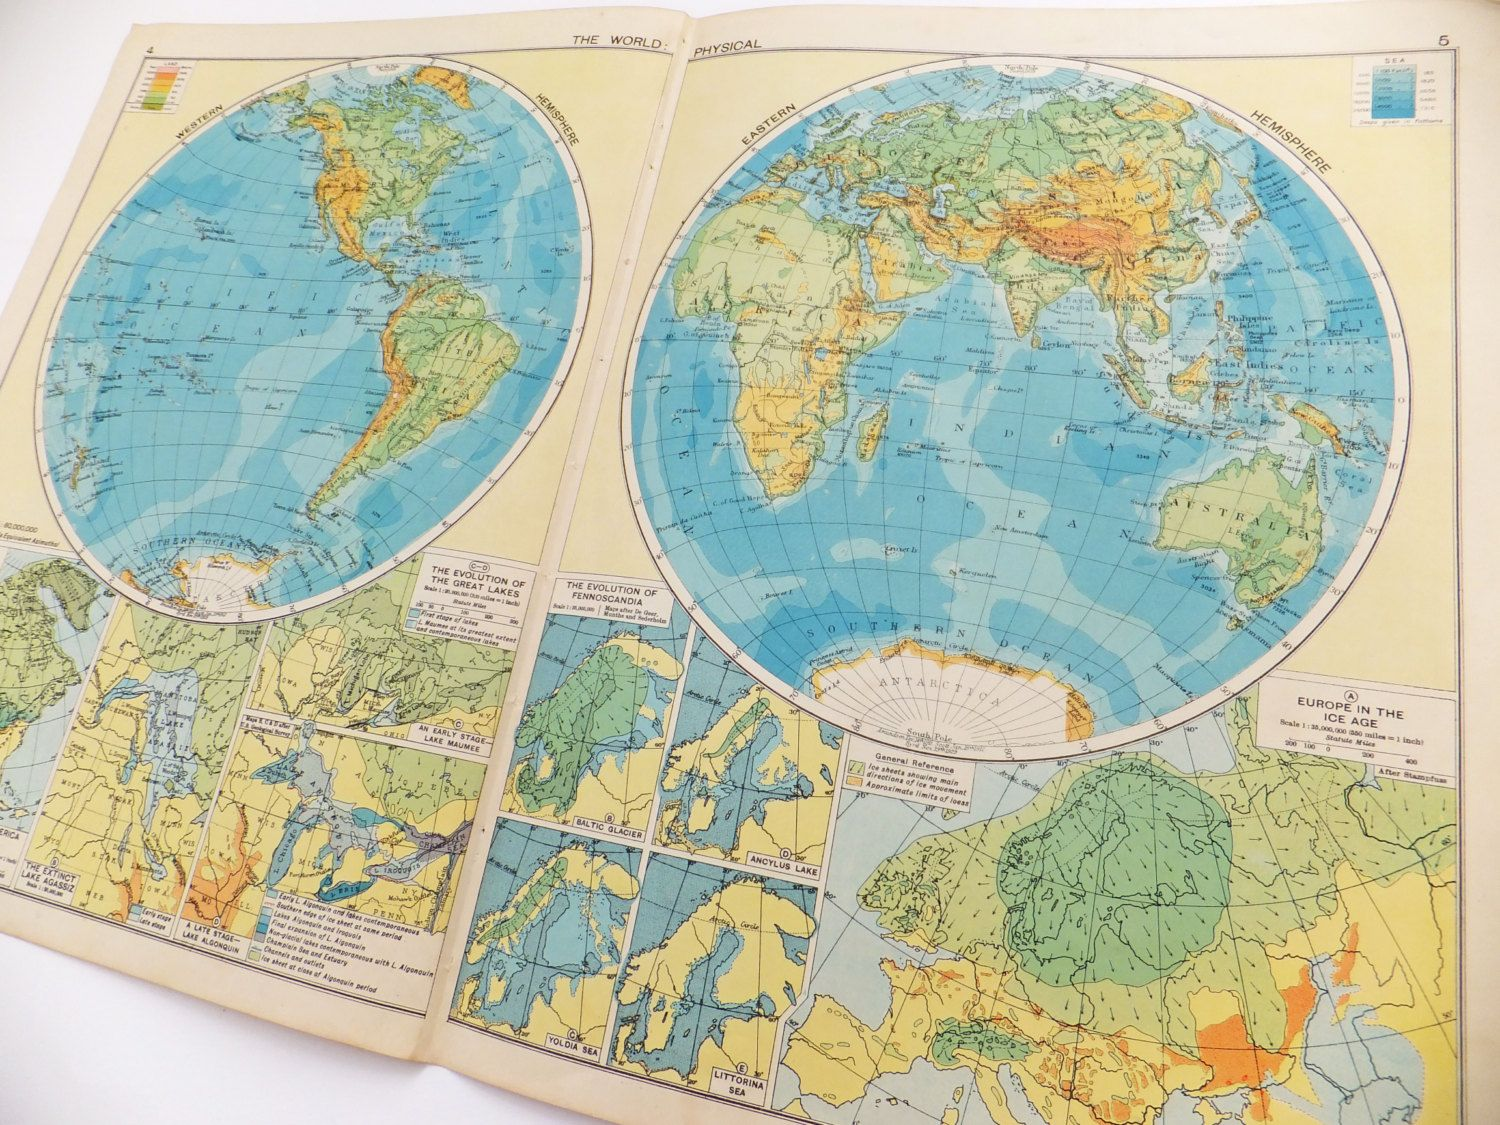 Vintage world map poster very large map of the world vintage map vintage world map poster very large map of the world vintage map 1948 gumiabroncs Gallery